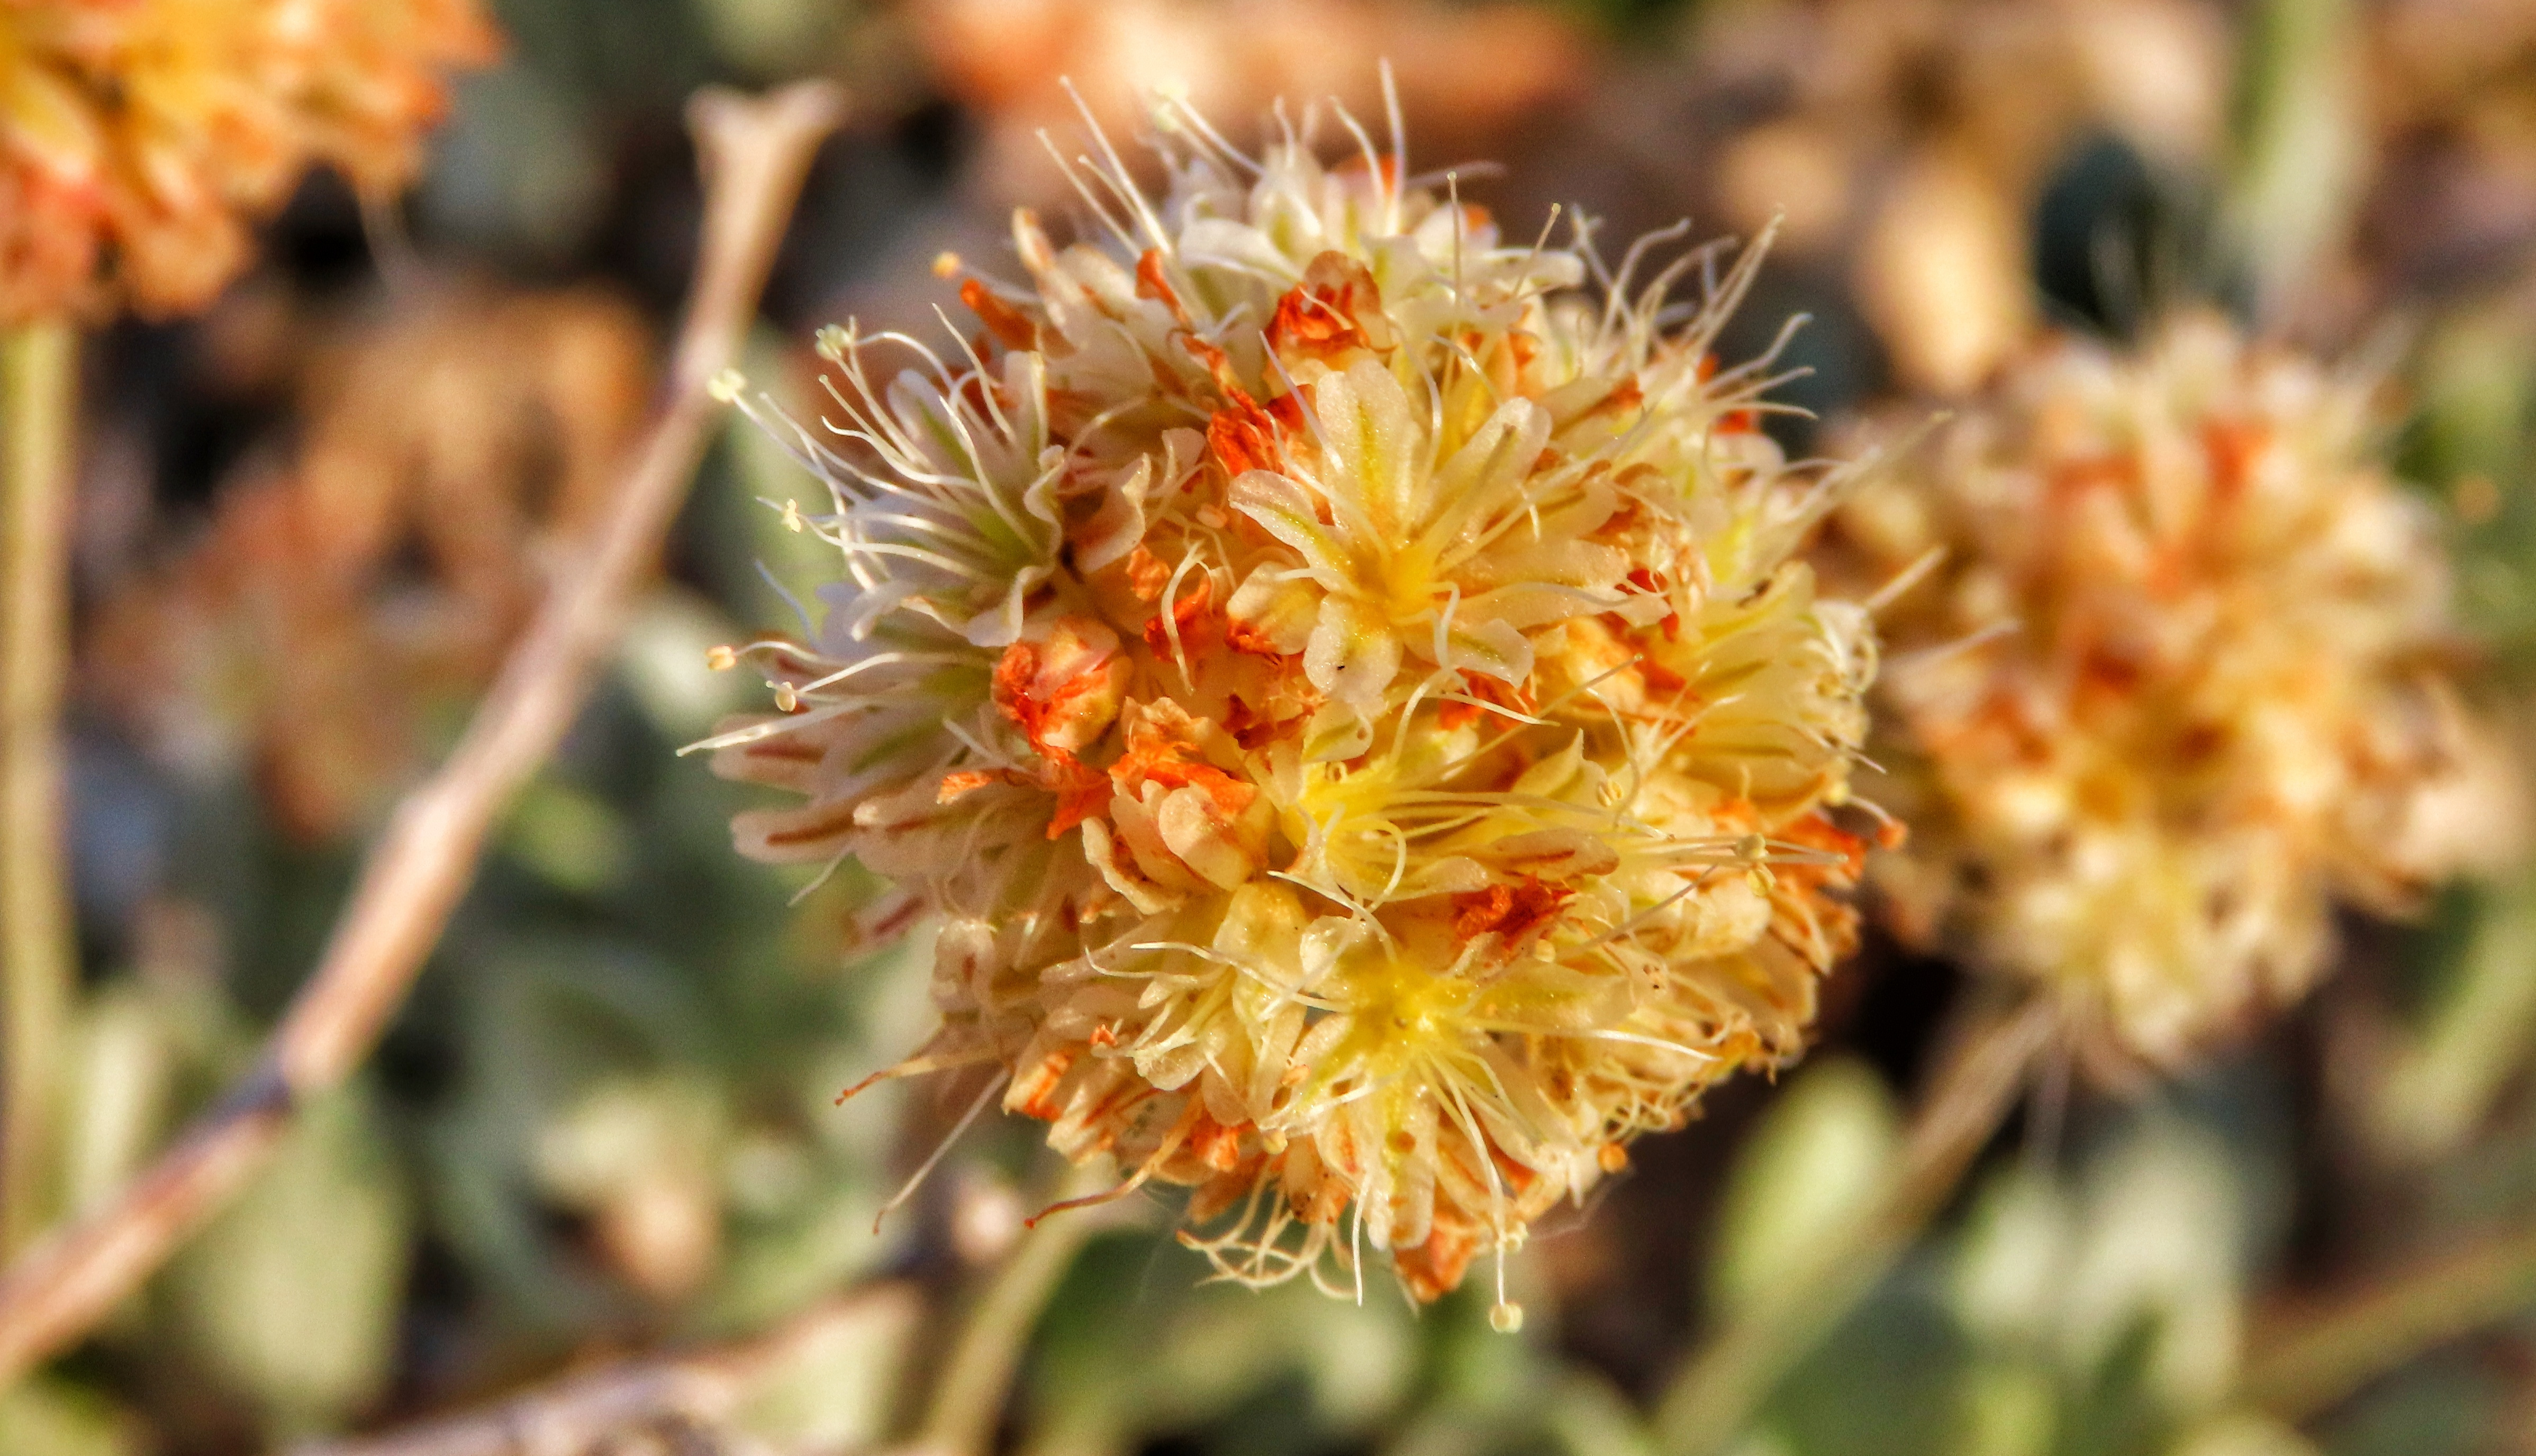 Tiehm's buckwheat flower by Patrick Donnelly/Center for Biological Diversity.